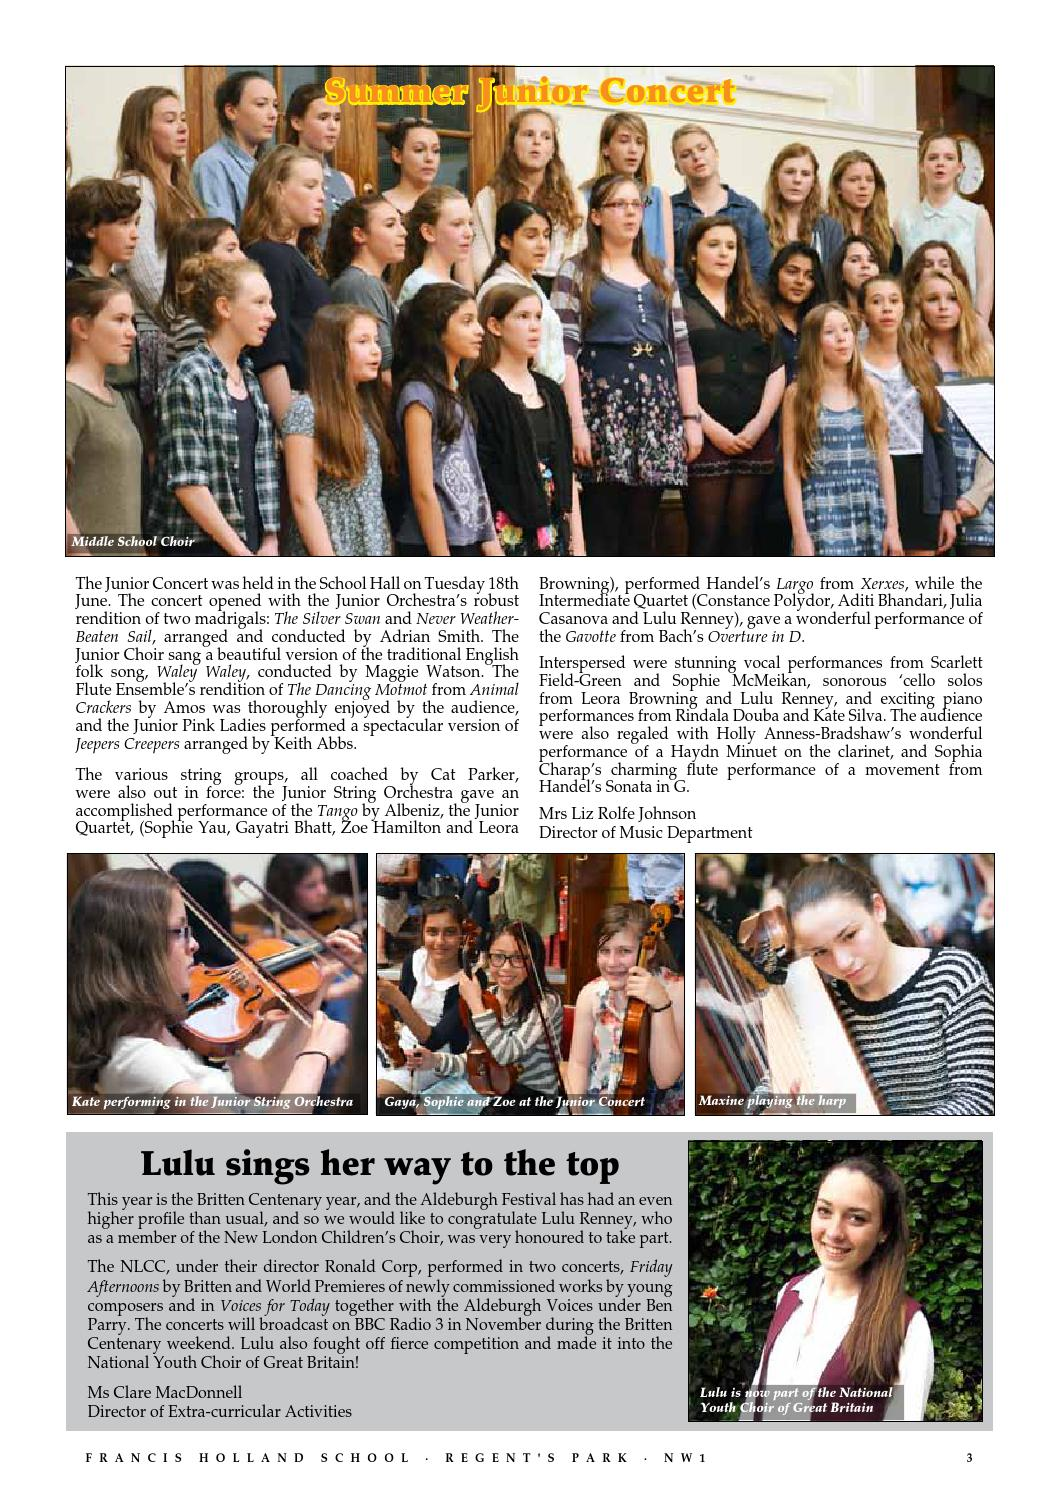 Fhs july 2013 newsletter by Francis Holland School Regent's